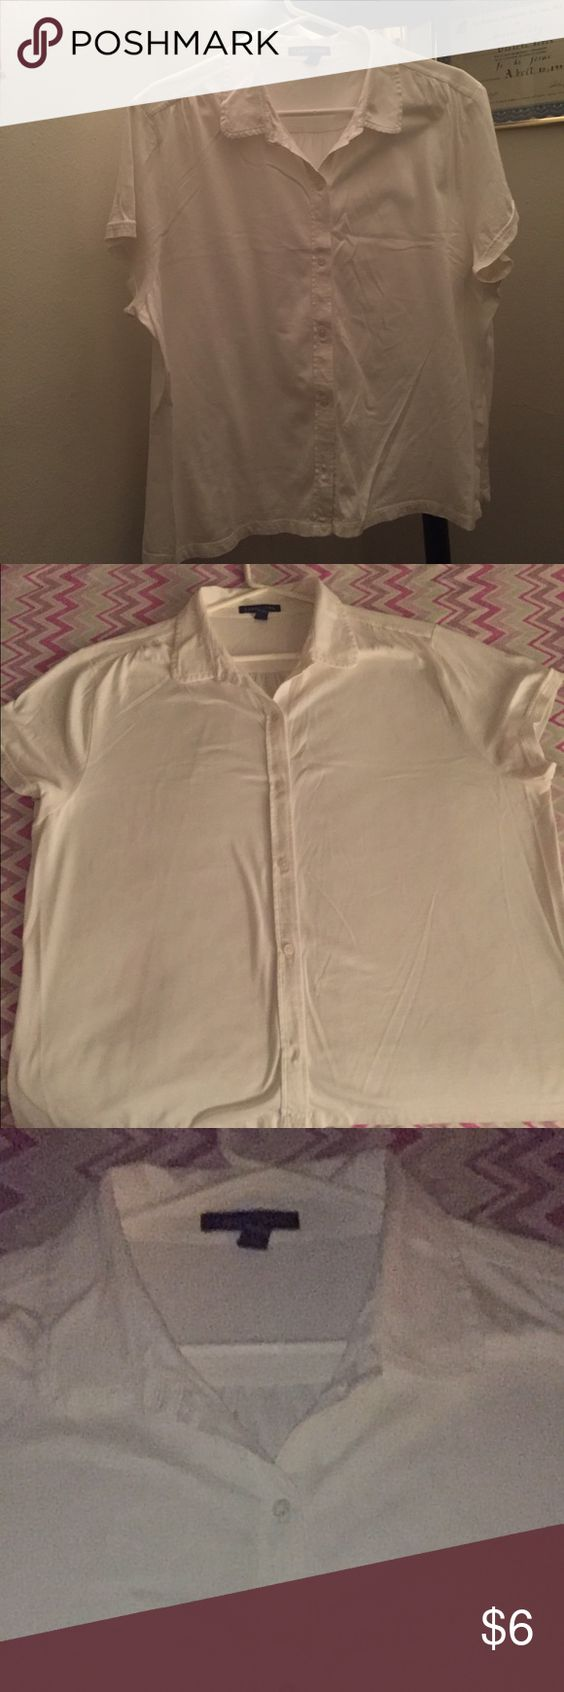 Blouse White blouse used but still in good condition. Must be bundled 👍 Lands' End Tops Button Down Shirts